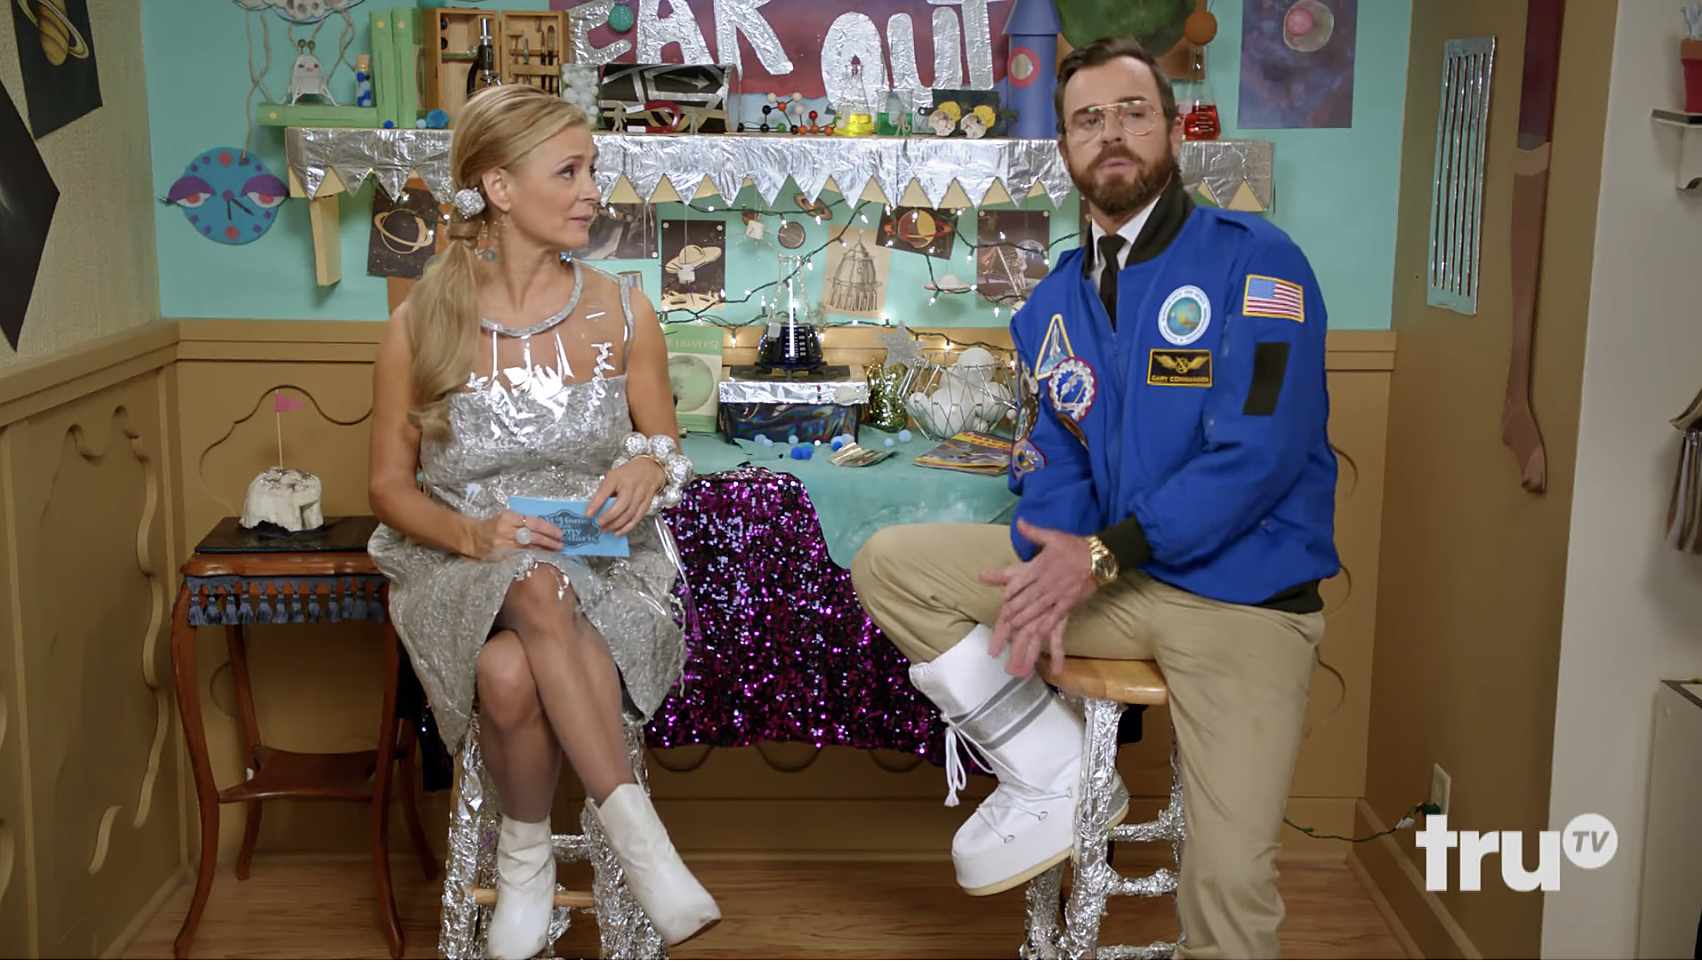 Amy and astronaut Justin Theroux trade space innuendo